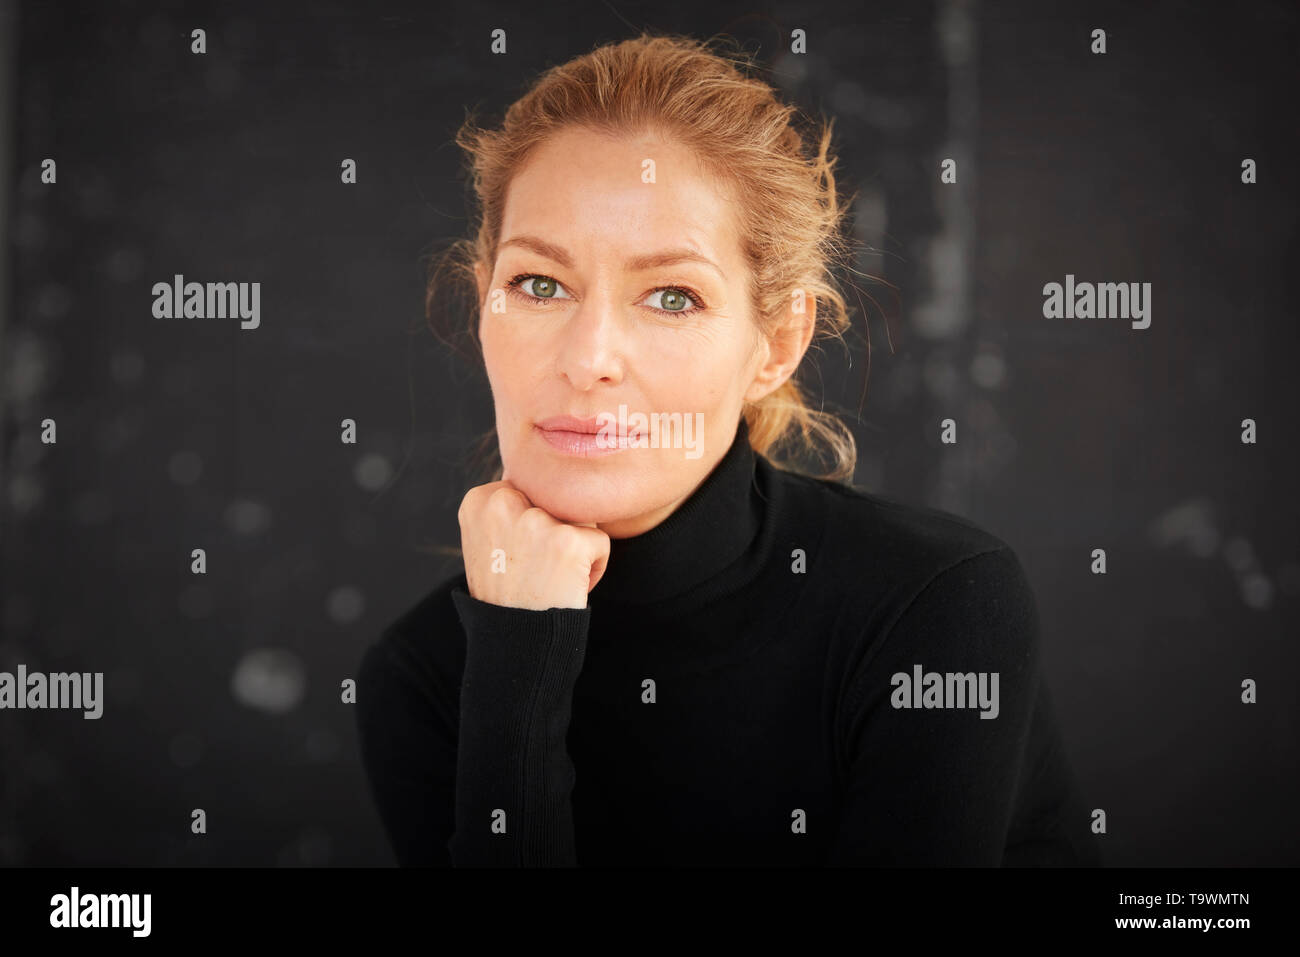 Portrait of beautiful mature woman wearing roll neck sweater and looking at camera while sitting with hand on chin at dark background. - Stock Image